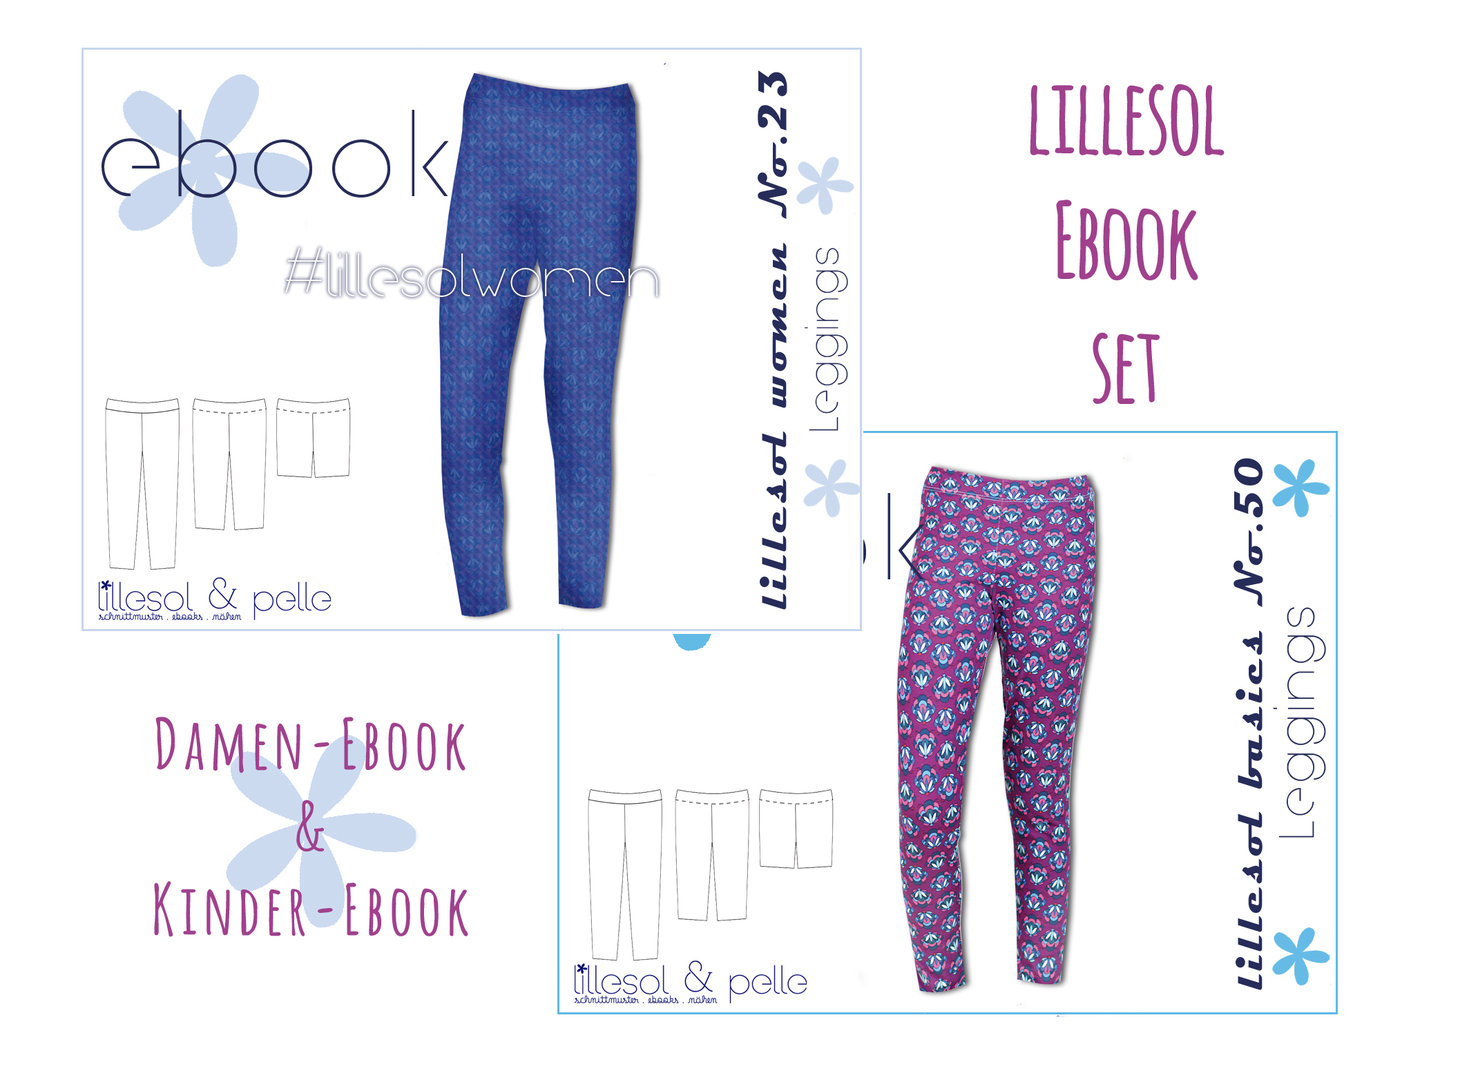 lillesol ebook set basics No.50 und women No.23 * mit Video-Nähanleitung *